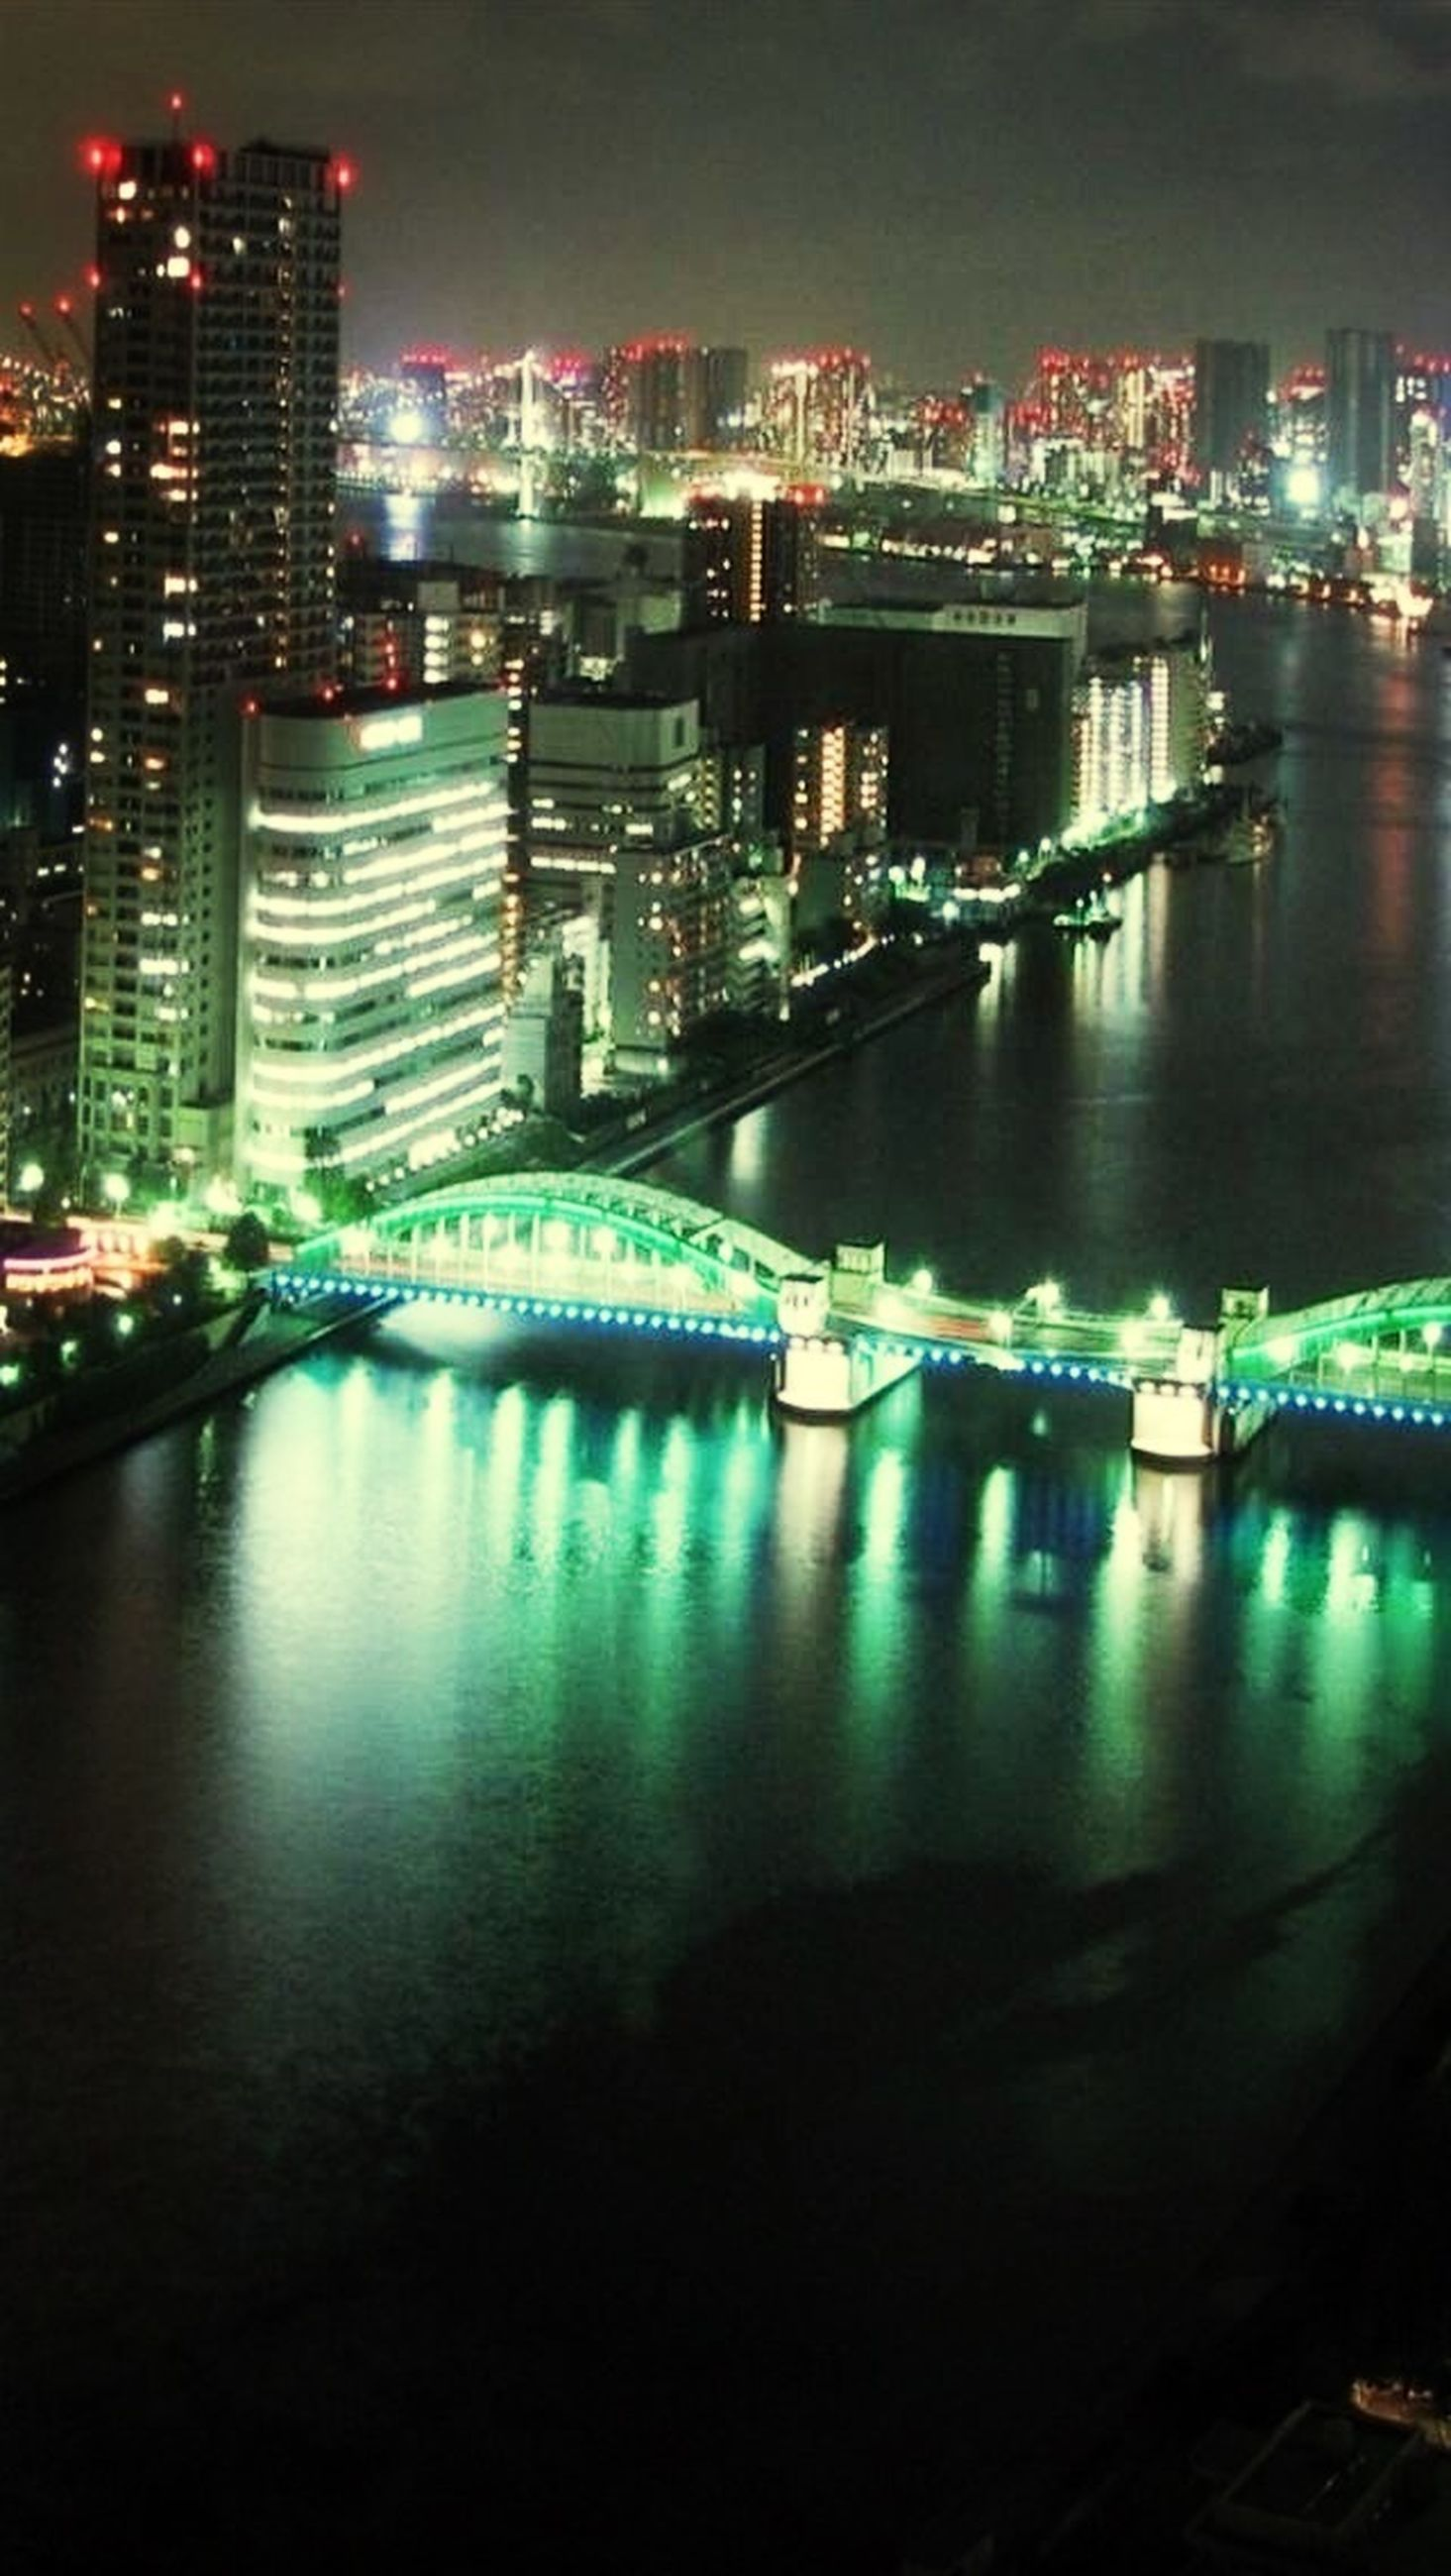 illuminated, night, architecture, built structure, building exterior, city, cityscape, water, river, waterfront, reflection, modern, skyscraper, travel destinations, city life, capital cities, residential building, light - natural phenomenon, lighting equipment, famous place